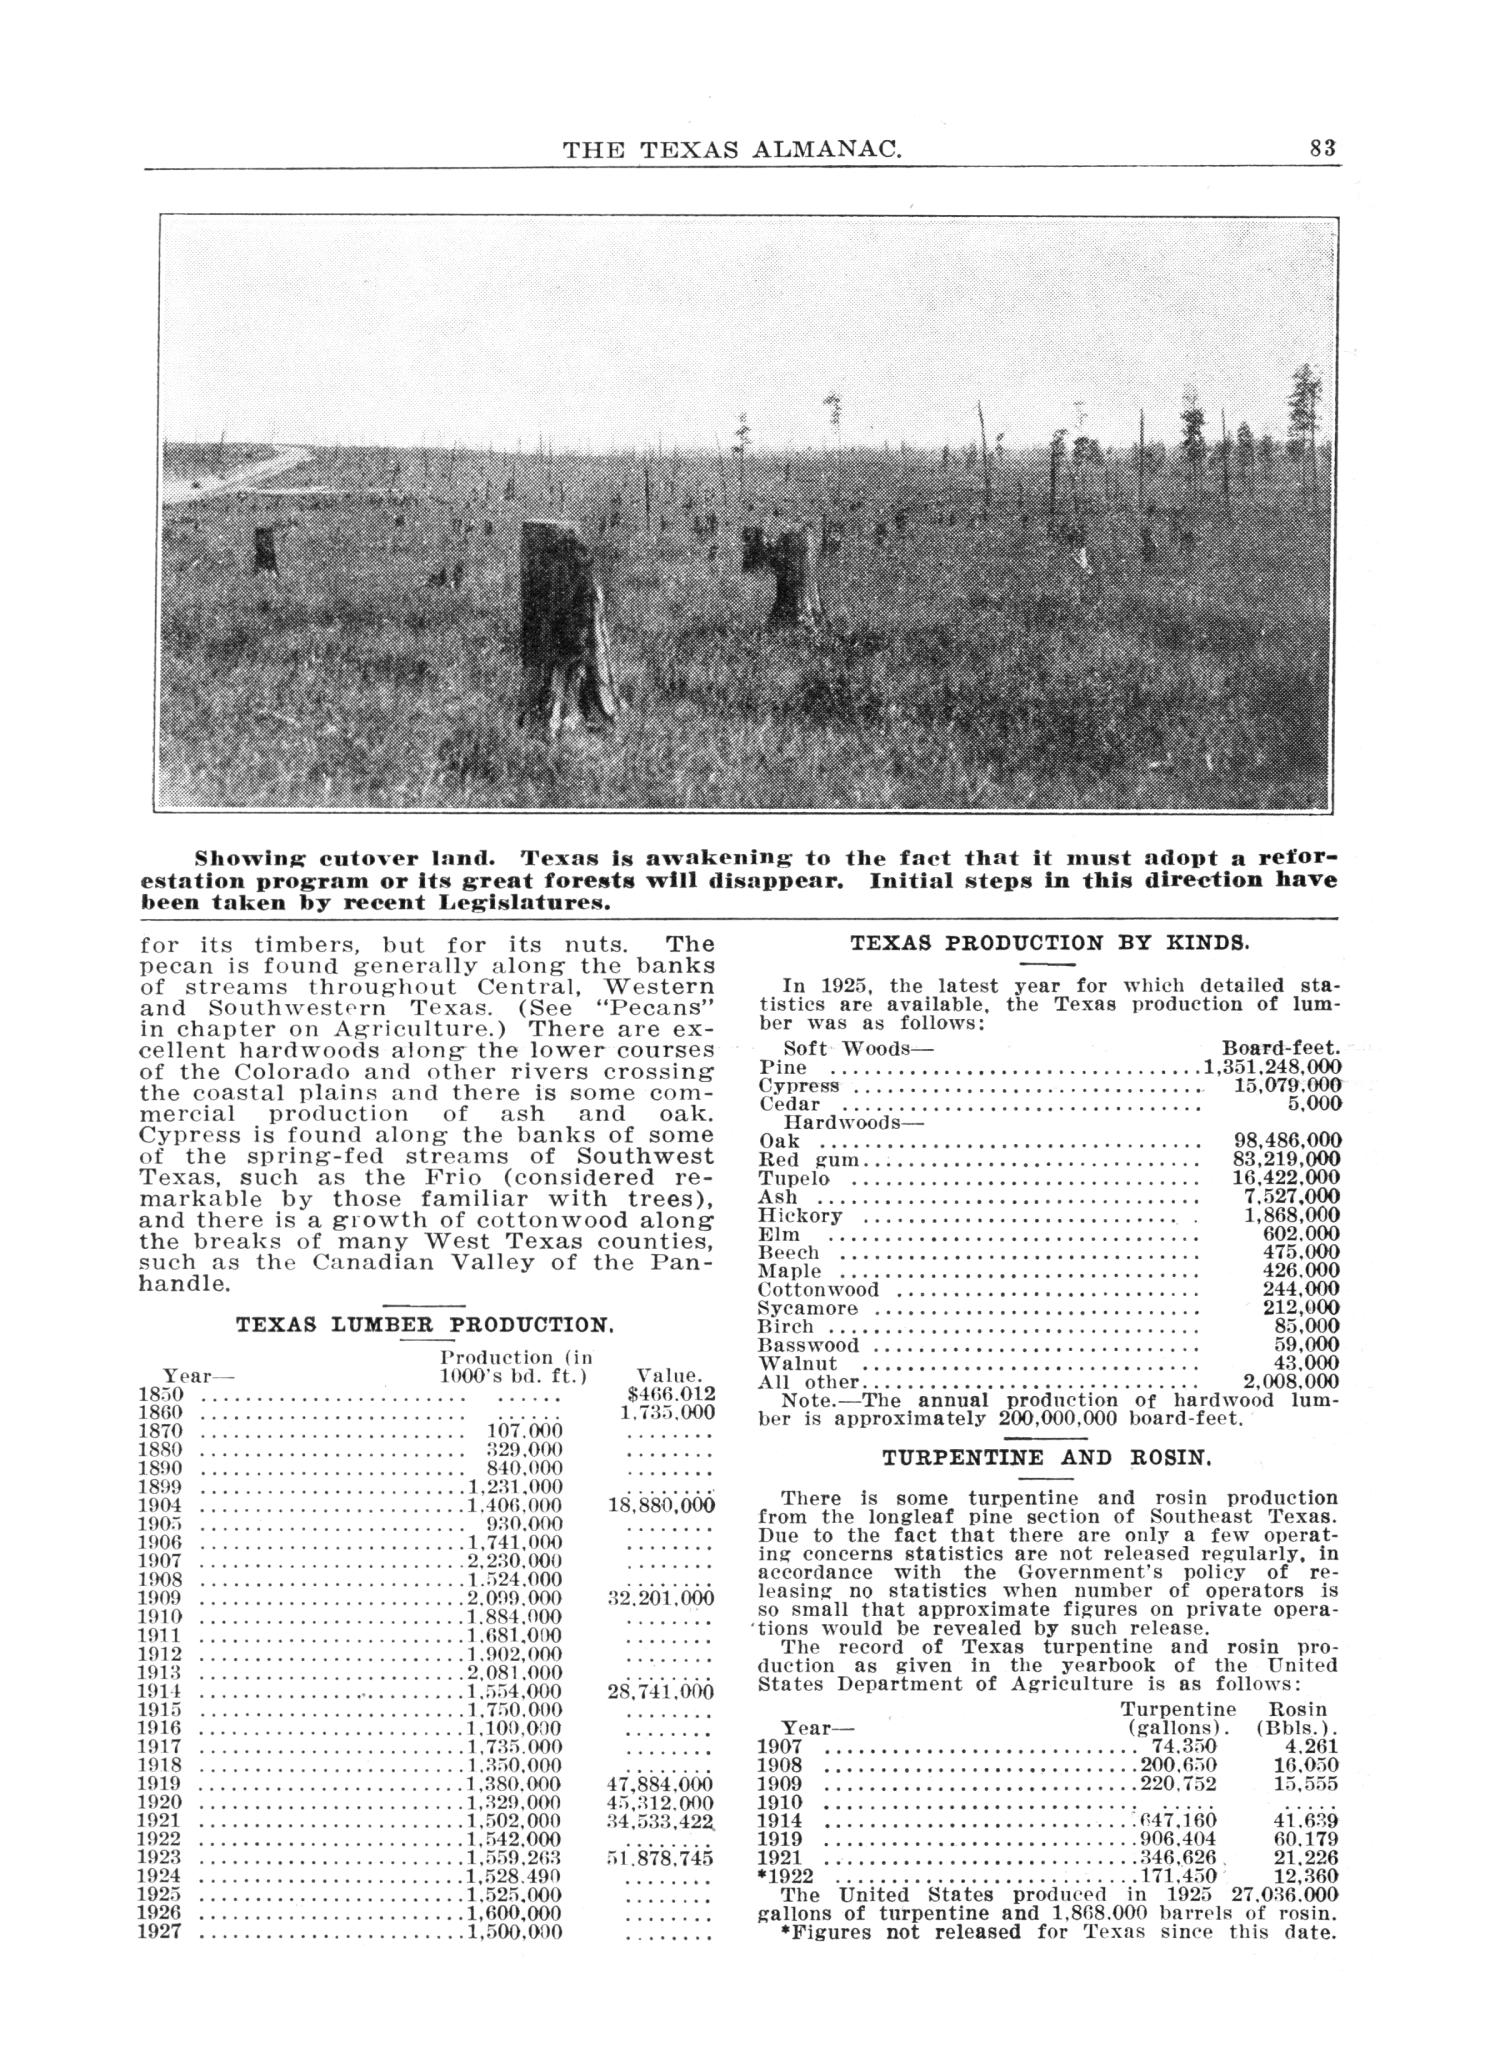 The 1928 Texas Almanac and State Industrial Guide                                                                                                      83